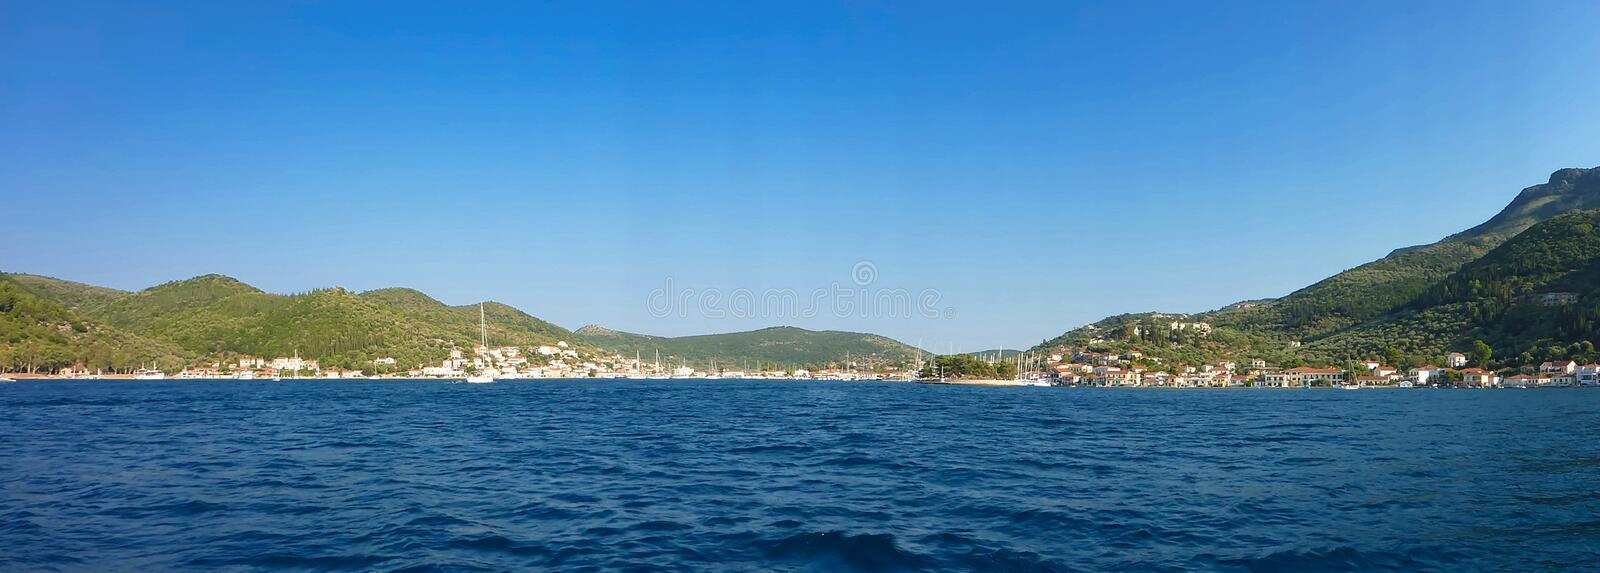 August 7th, 2018. Panoramic view of Vathi or Vathy or Port Vathi is the capital and main harbour of the island of Ithaca in the royalty free stock image